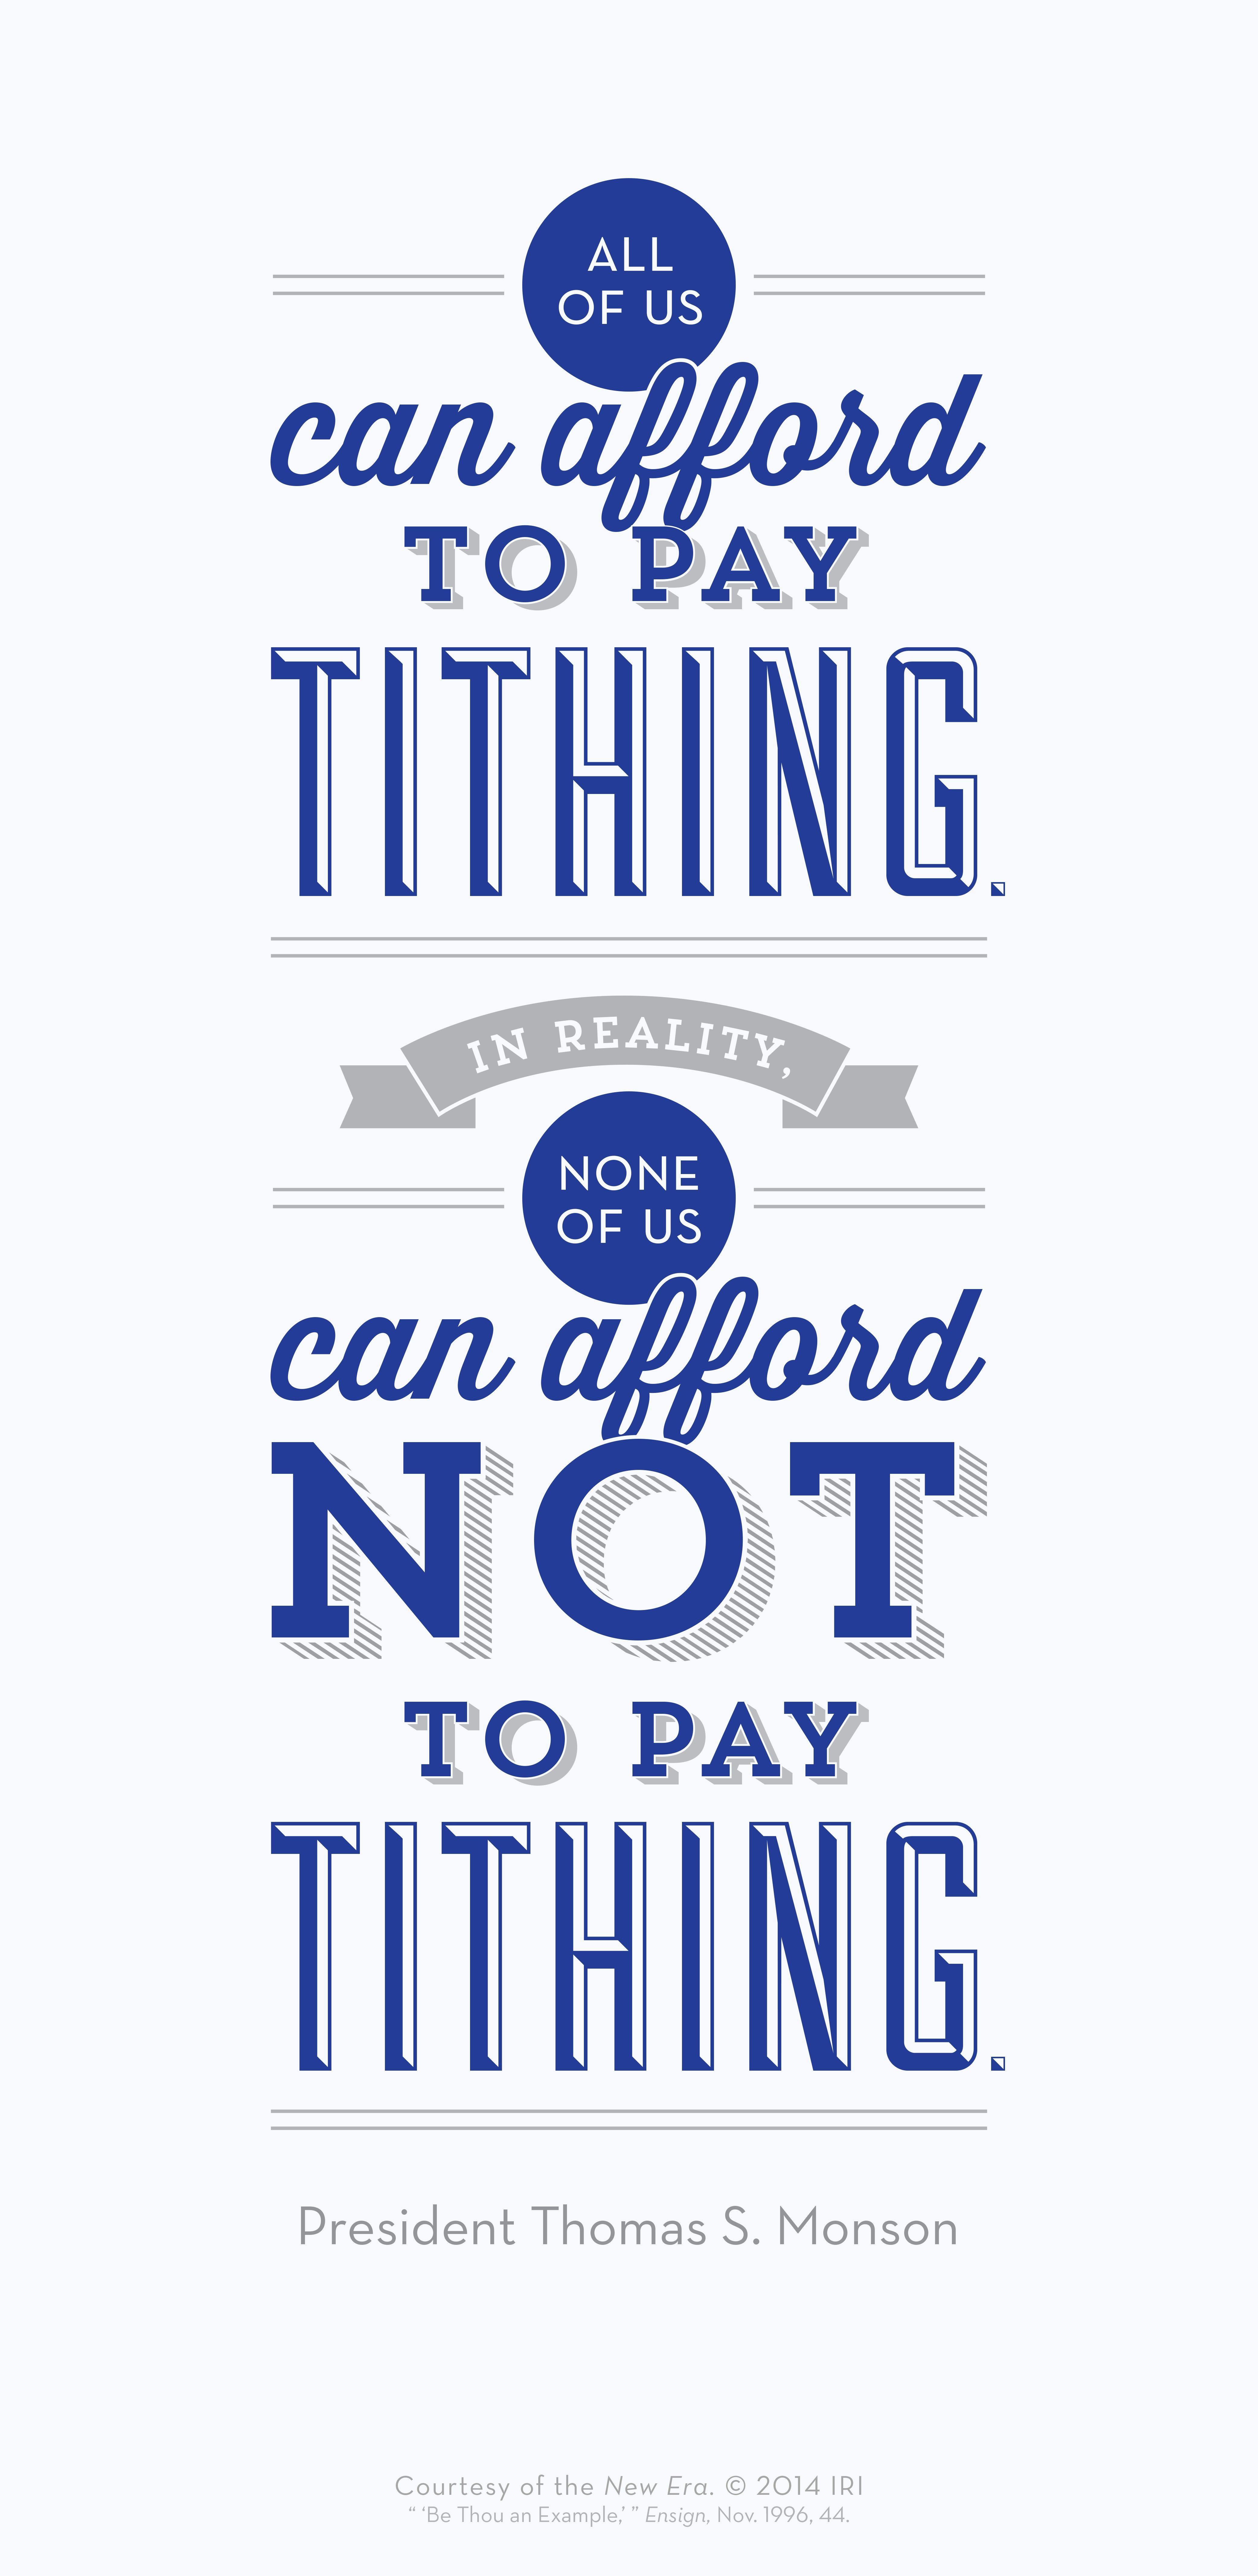 All of us can afford to pay tithing in reality none of us